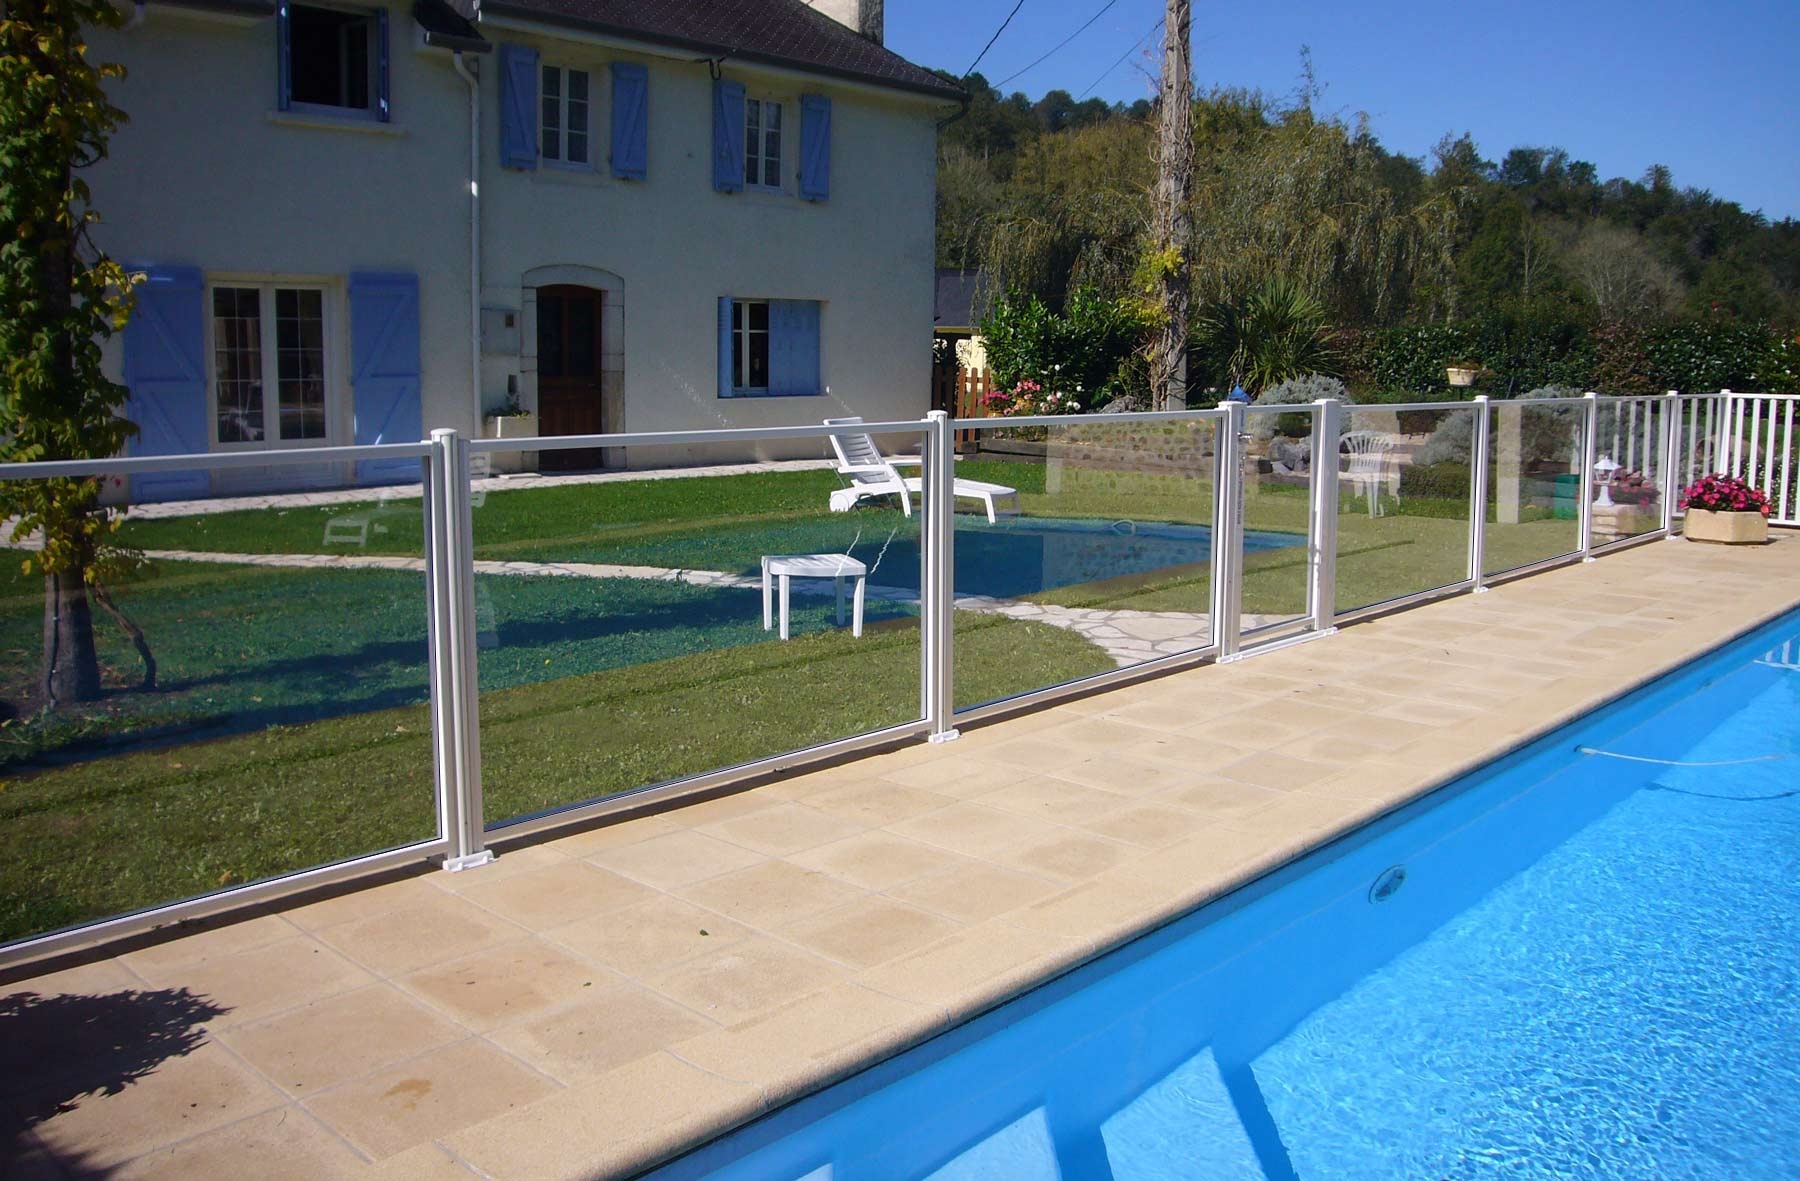 Les barri res en verre de protection d 39 atlantic barriere for Barriere amovible pour piscine